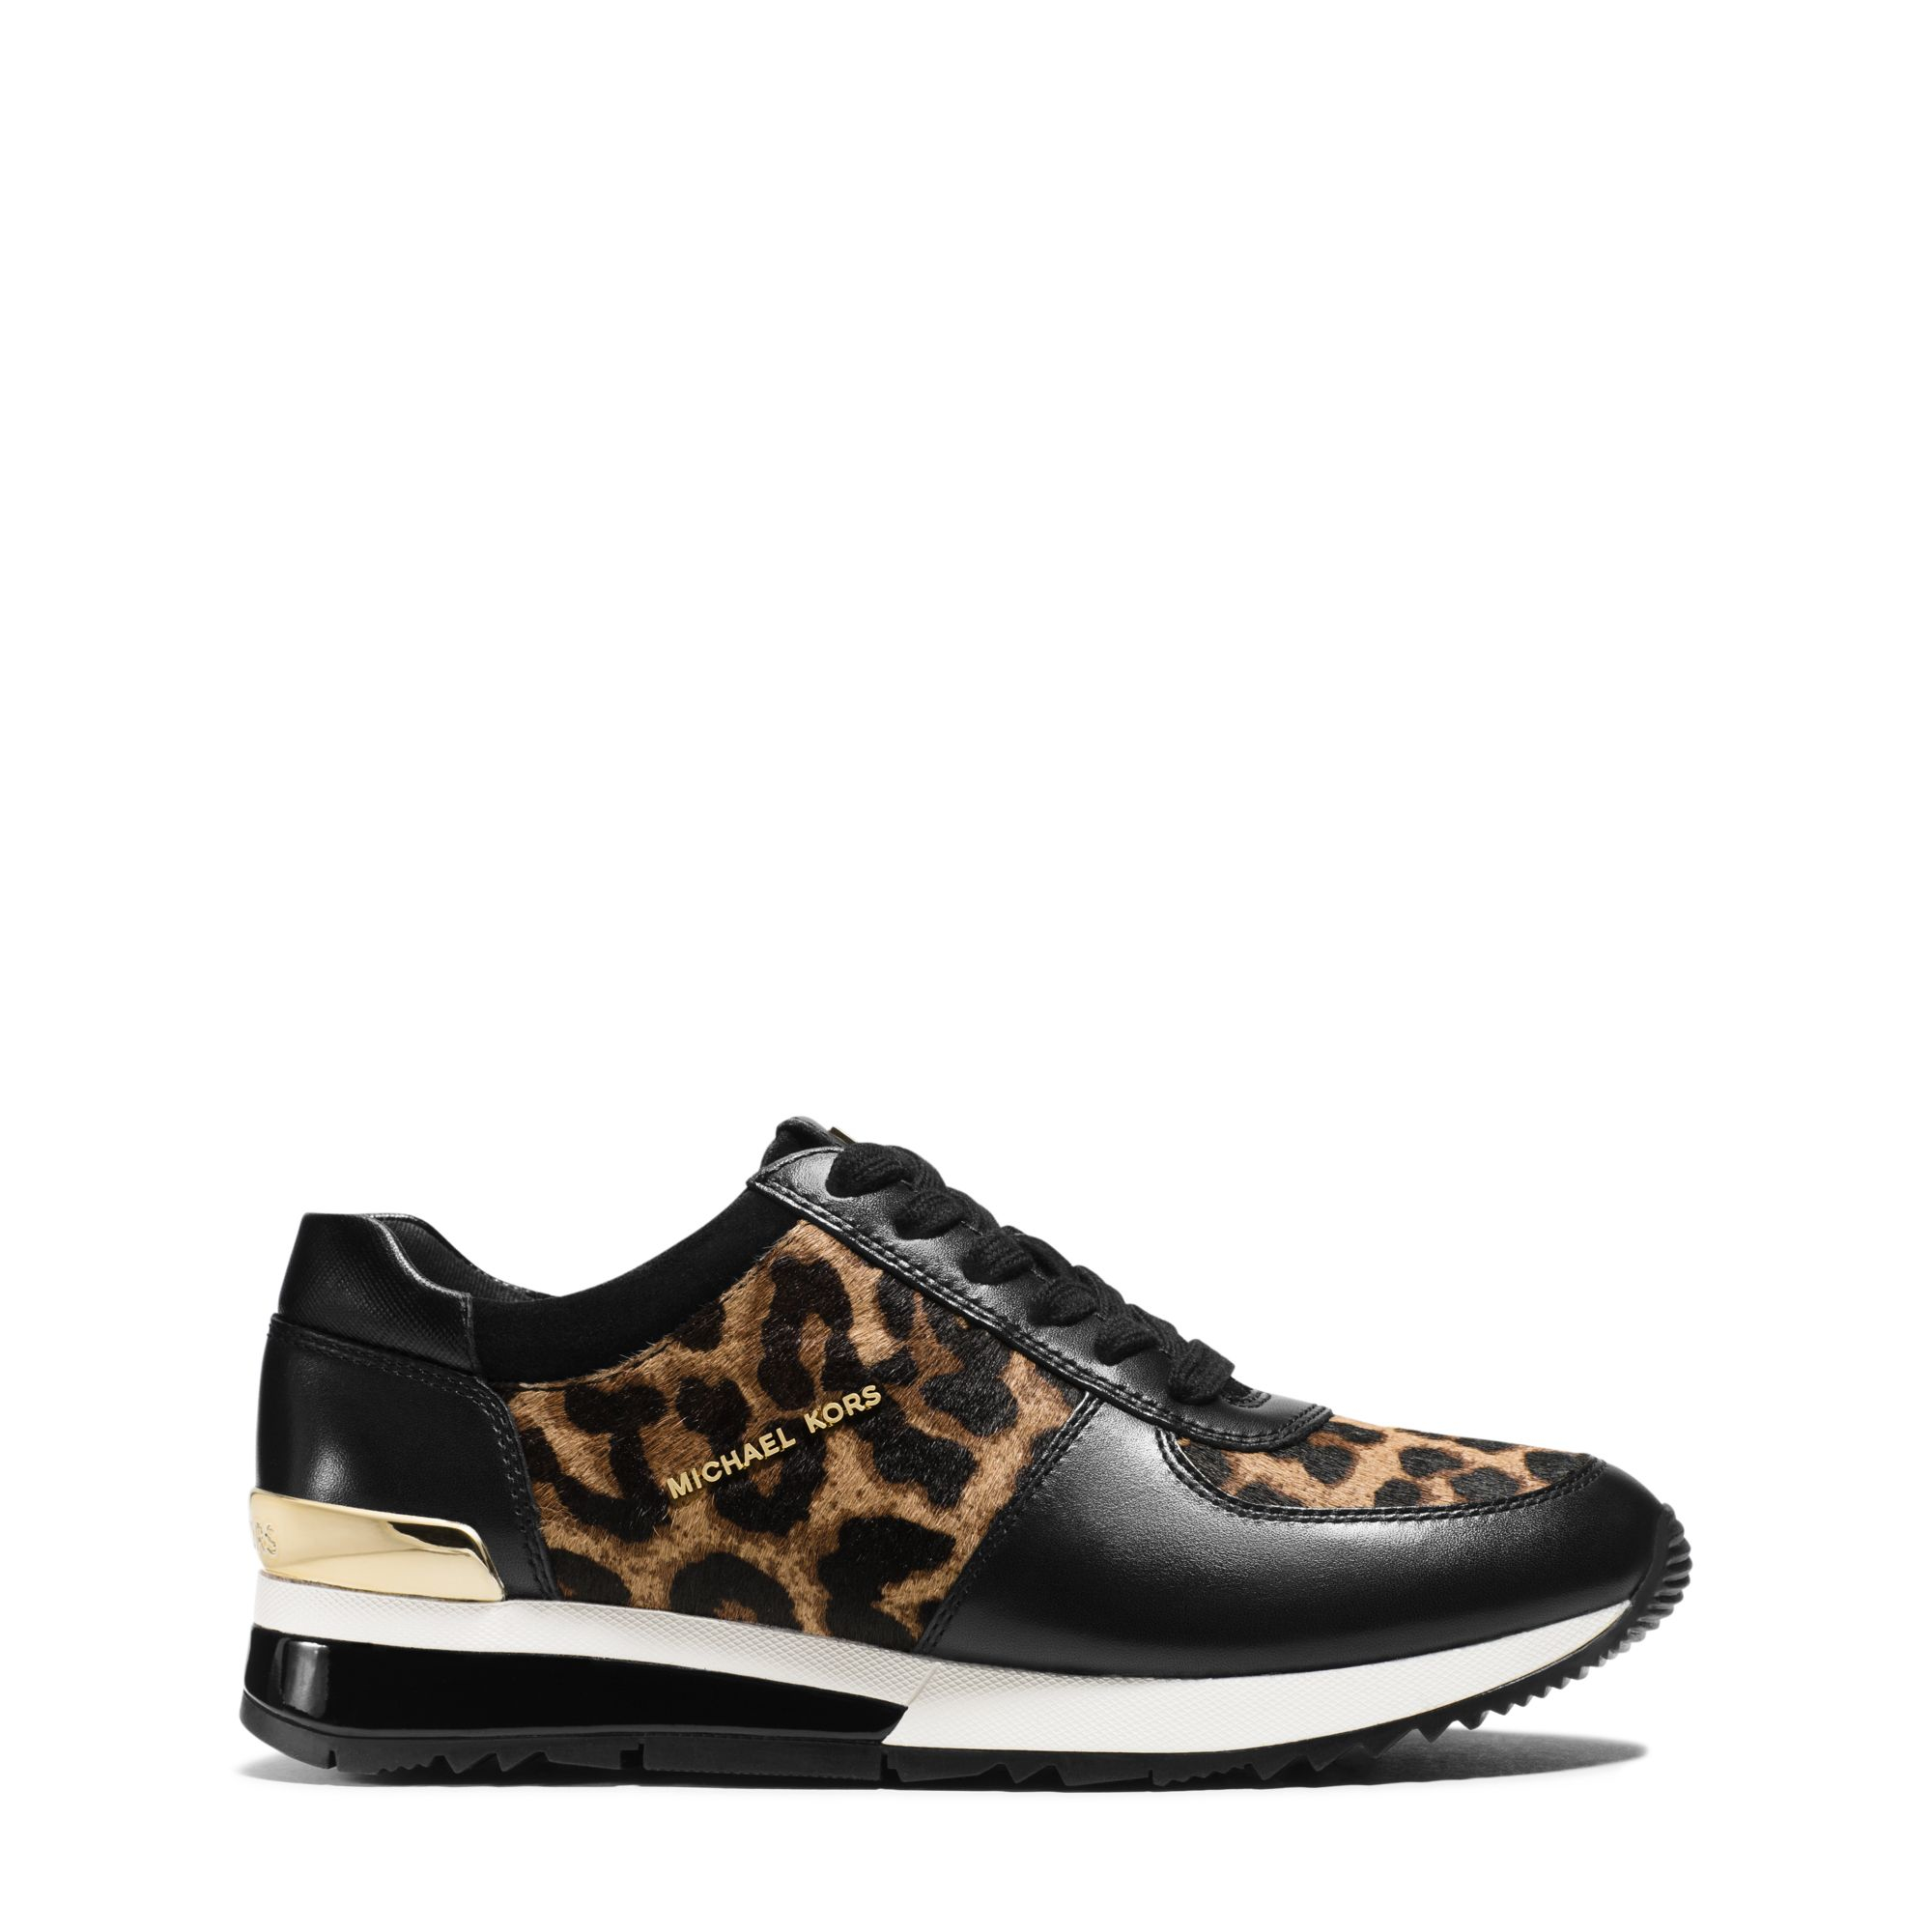 Lyst - Michael Kors Allie Leopard Calf Hair And Leather ...